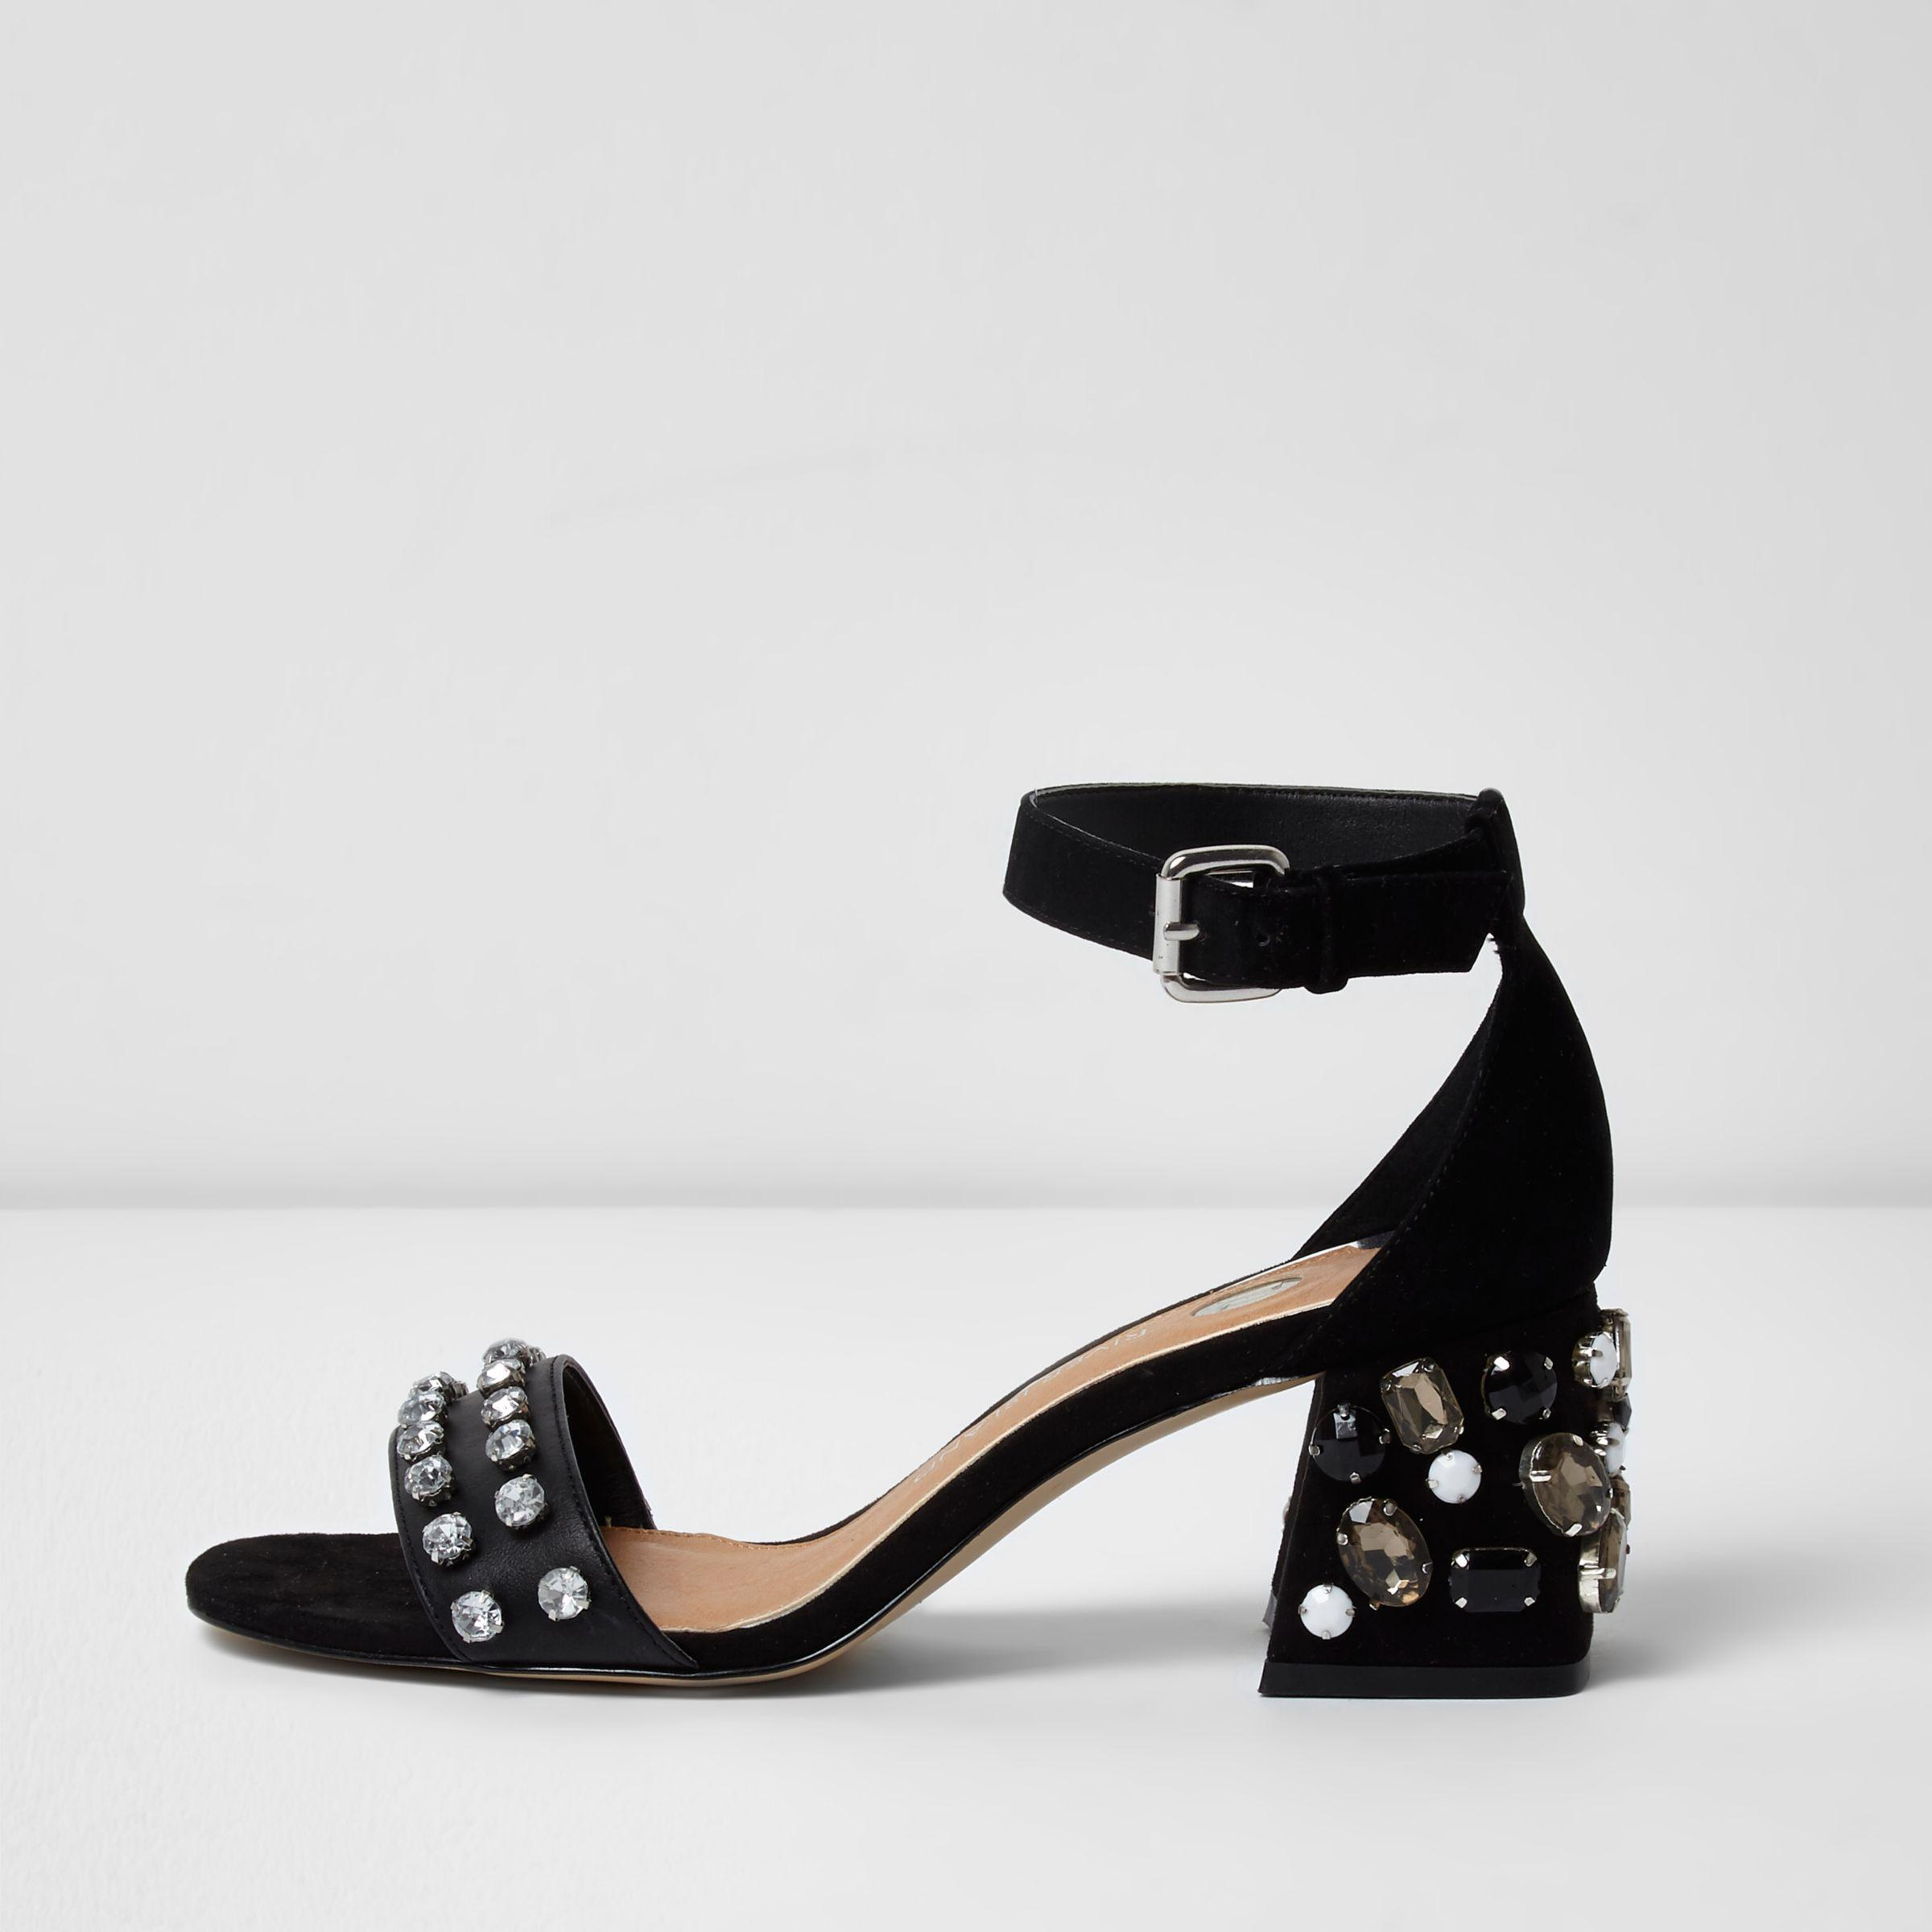 c6b1824e7a6 River Island Black Diamante Embellished Block Heel Sandals in Black ...